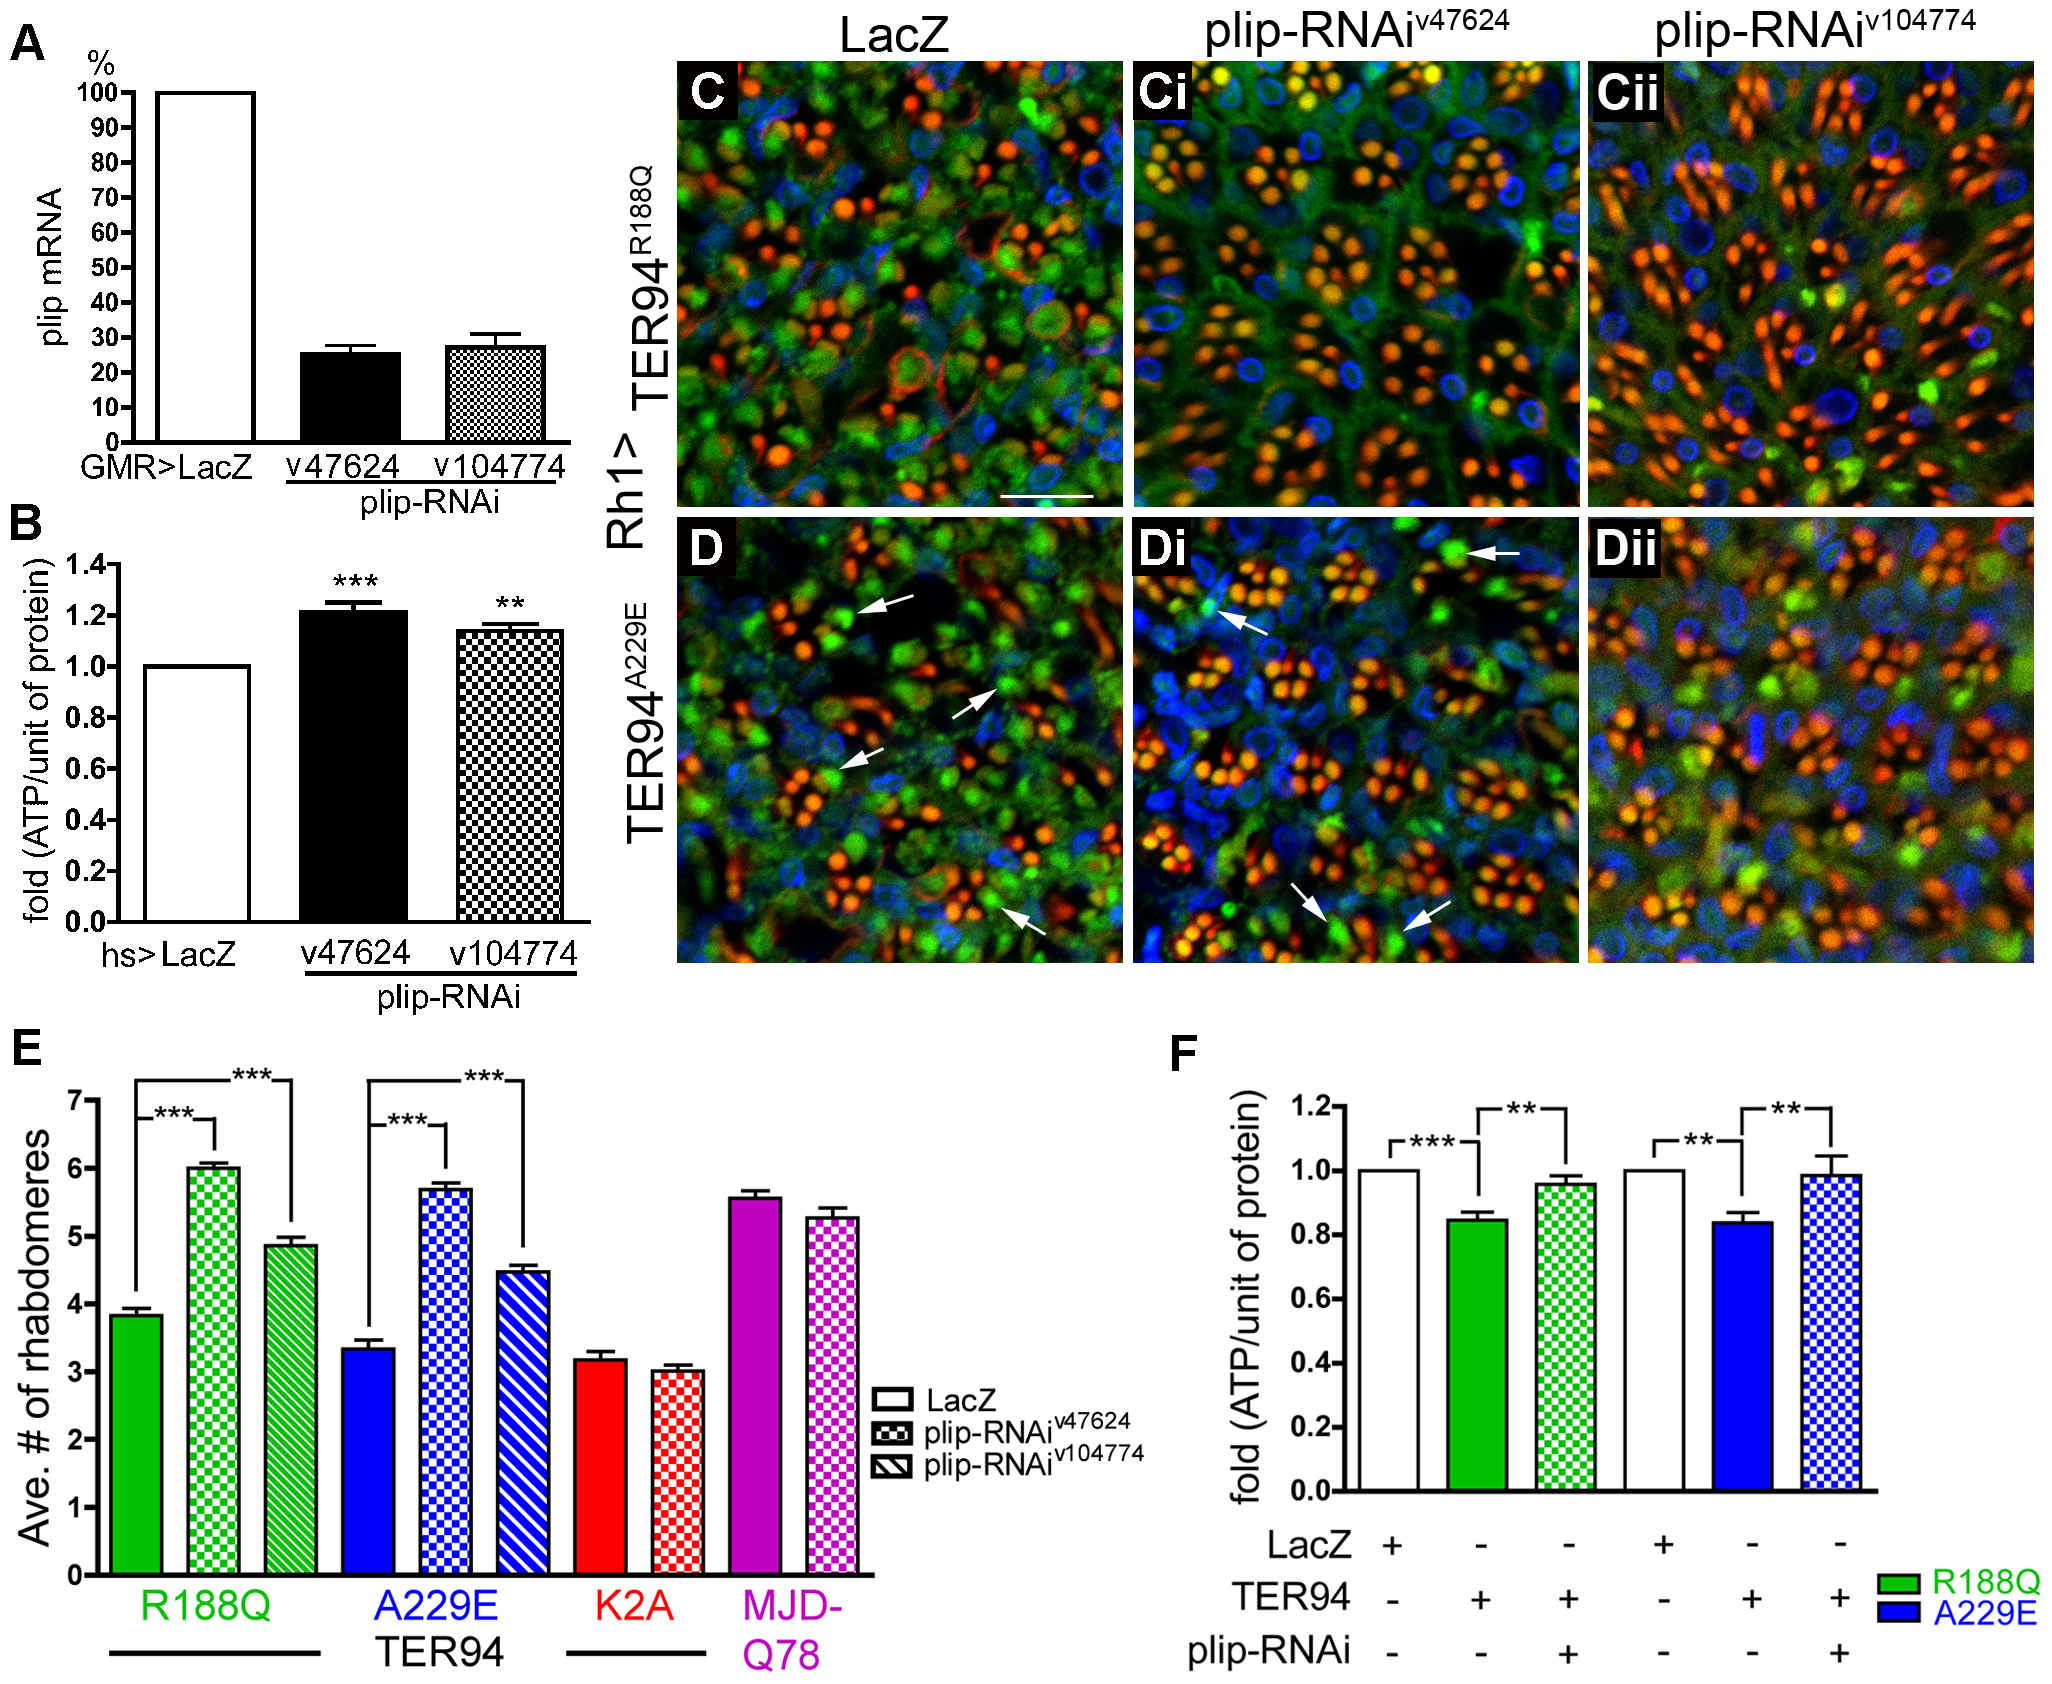 Neurodegeneration induced by pathogenic TER94 mutants can be suppressed by the knockdown of <i>plip</i>.